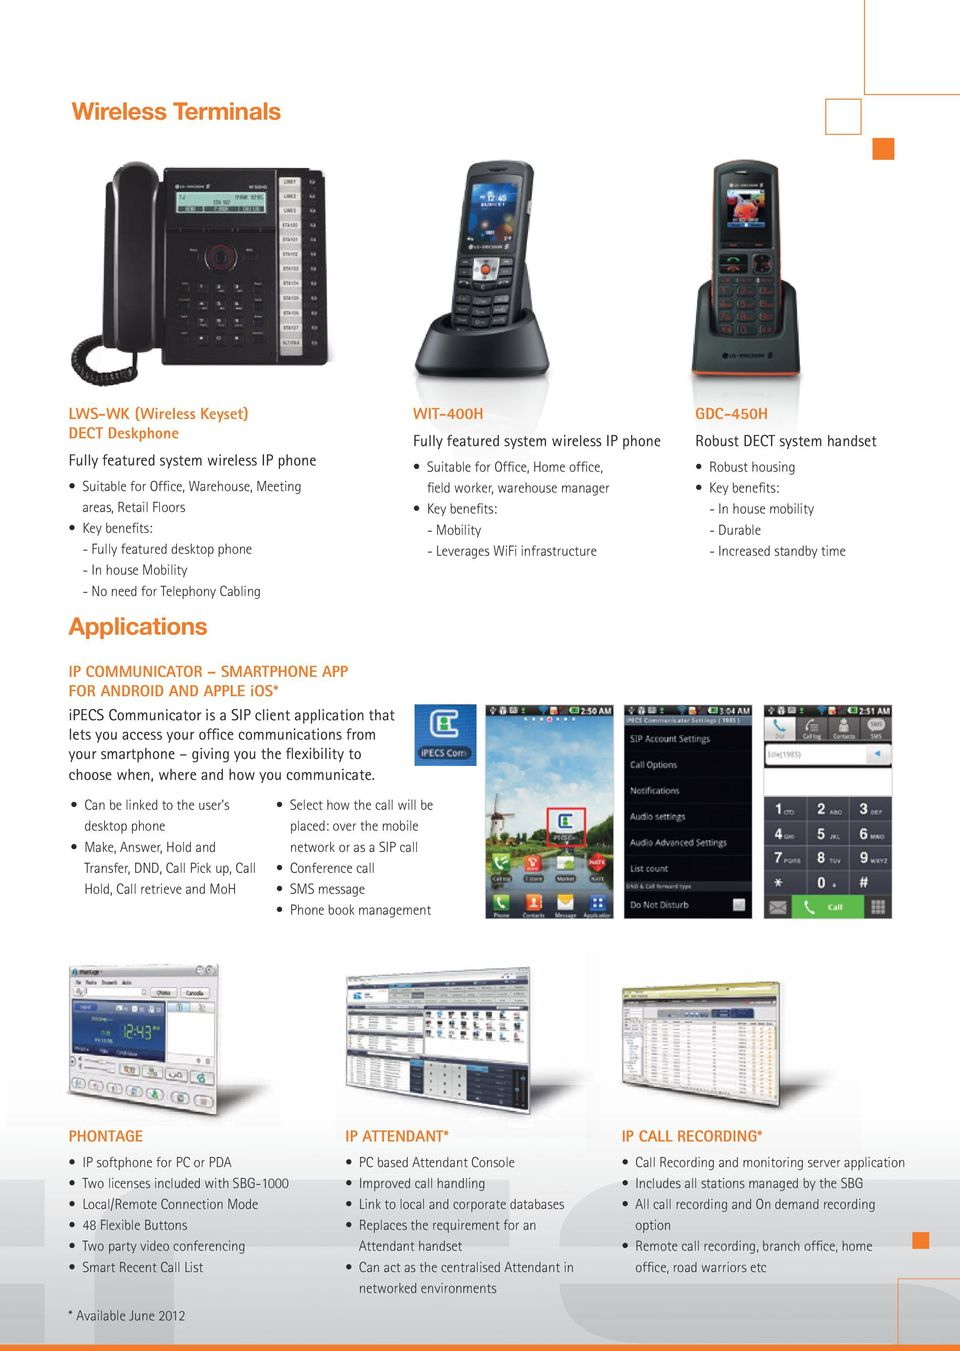 WiFi infrastructure GDC-450H Robust DECT system handset Robust housing - In house mobility - Durable - Increased standby time IP COMMUNICATOR SMARTPHONE APP FOR ANDROID AND APPLE ios* ipecs